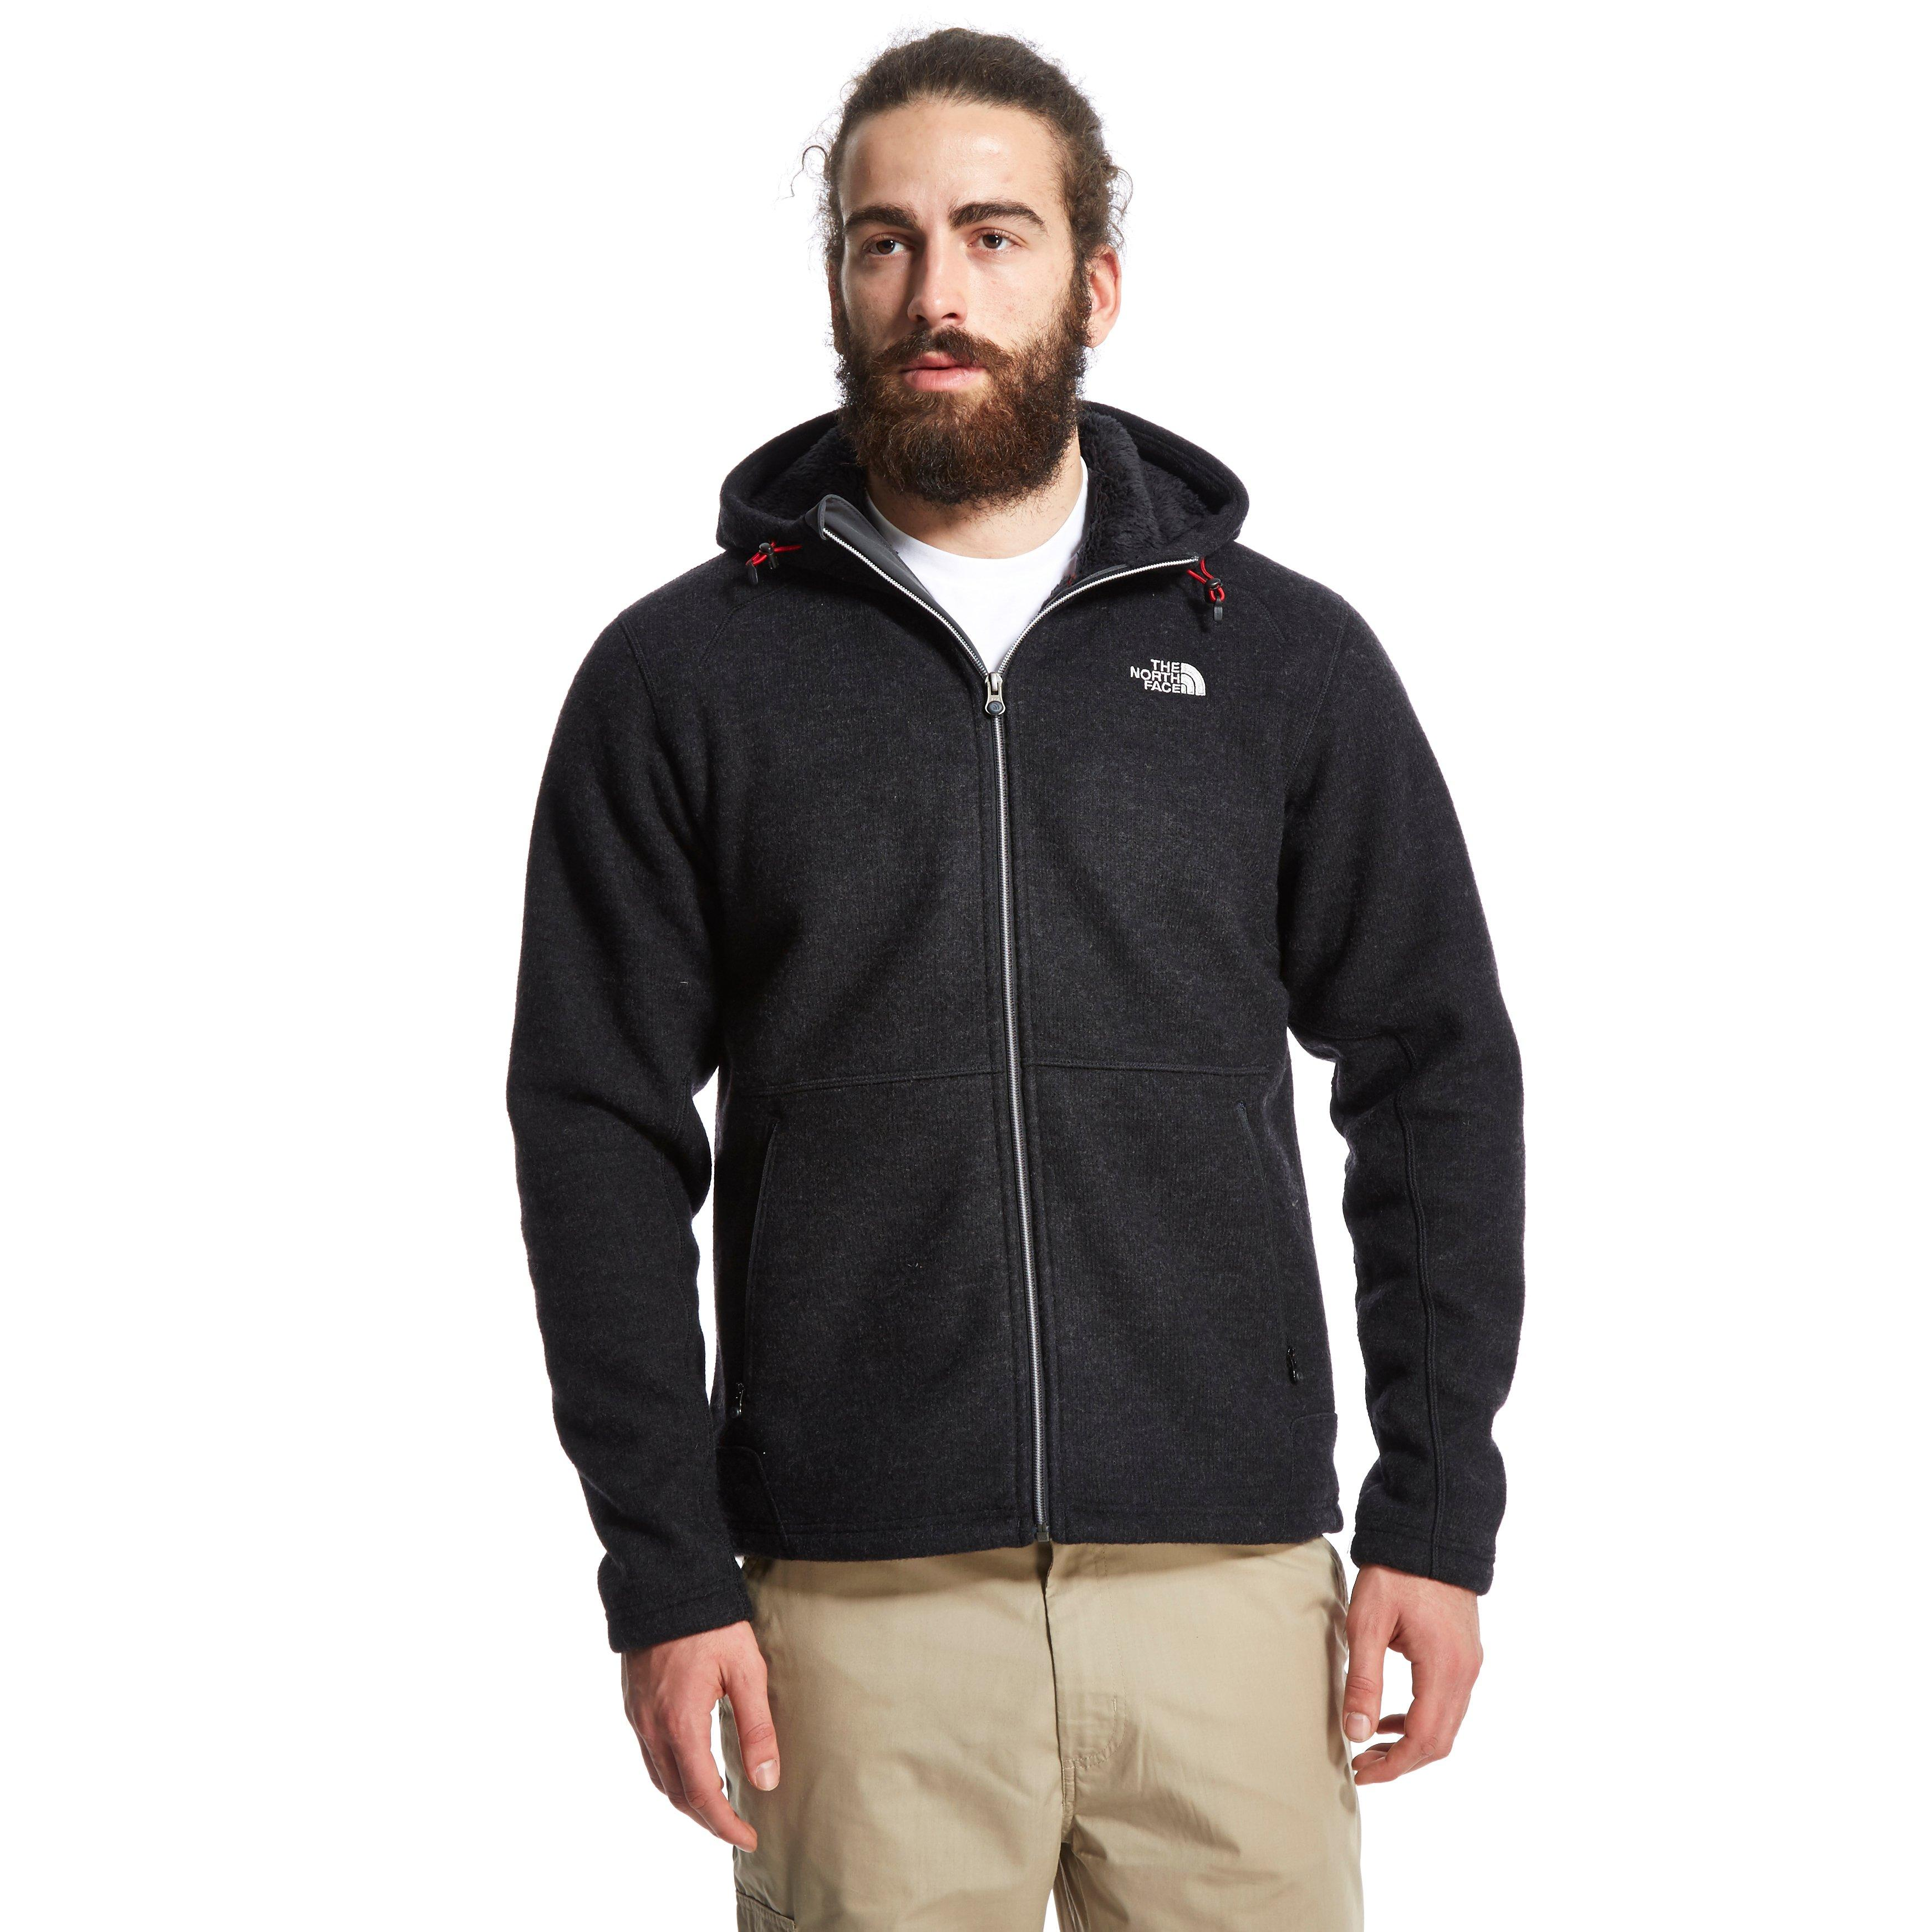 Best place to buy north face jackets